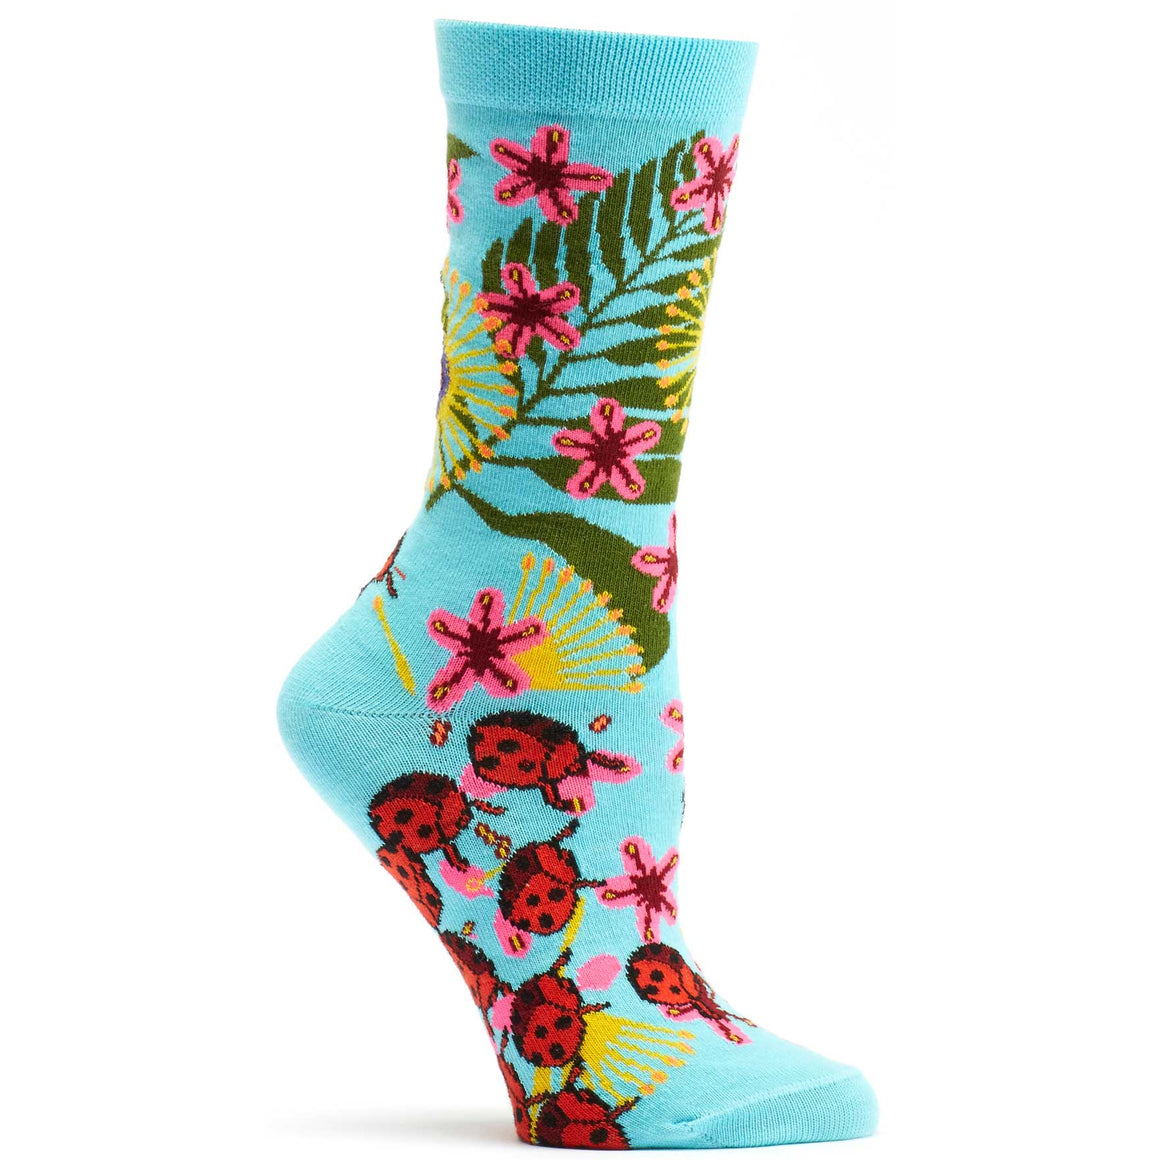 Ozone Design Womens insect Warrior Floral Sock in Blue